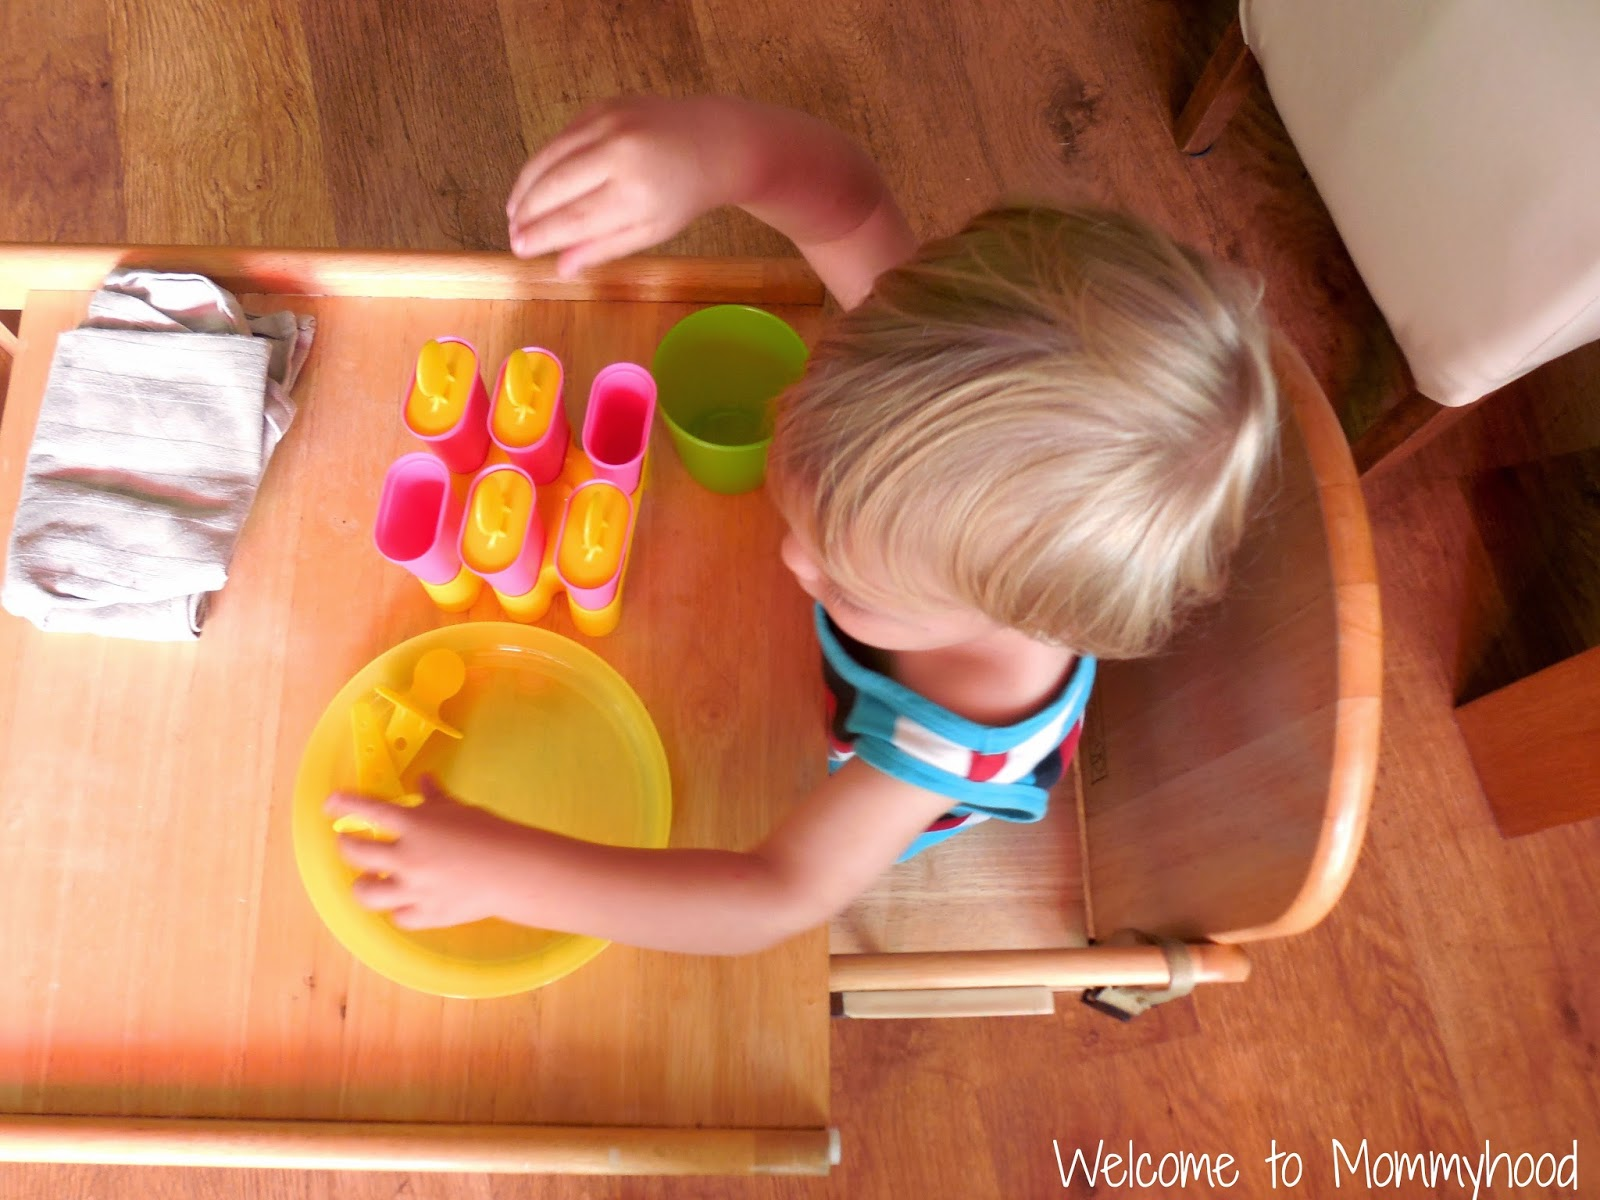 Montessori Toddler Activities by Welcome to Mommyhood #Montessori #MontessoriToddlerActivities